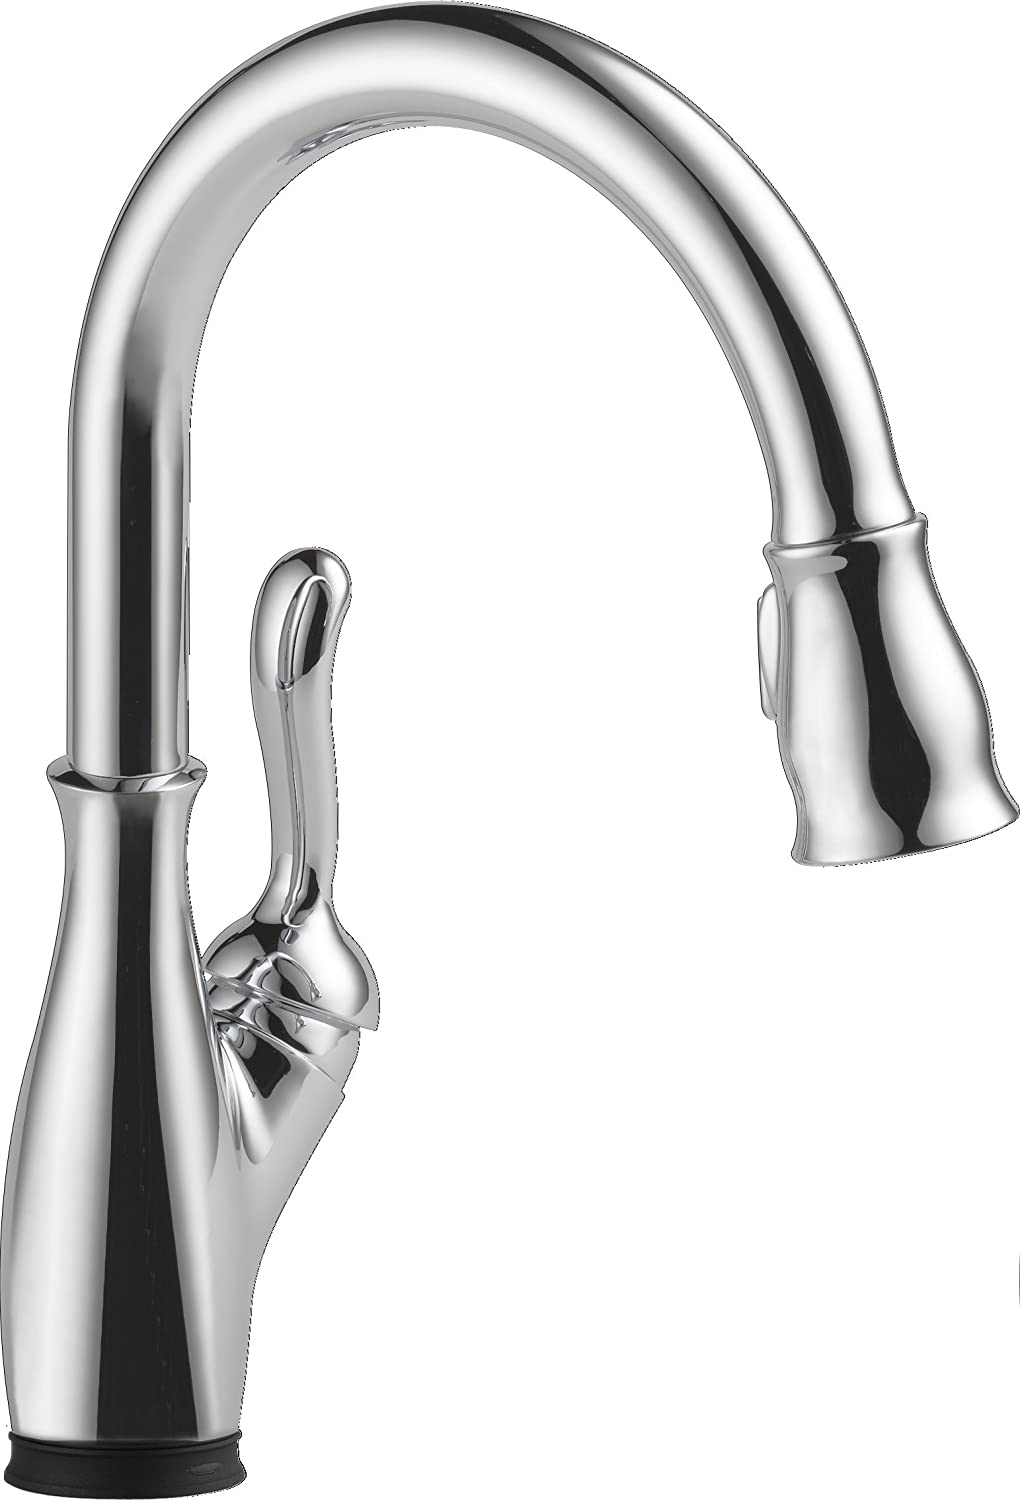 Delta Leland Faucet. Build. 100 Grohe Tenso Faucet Grohe